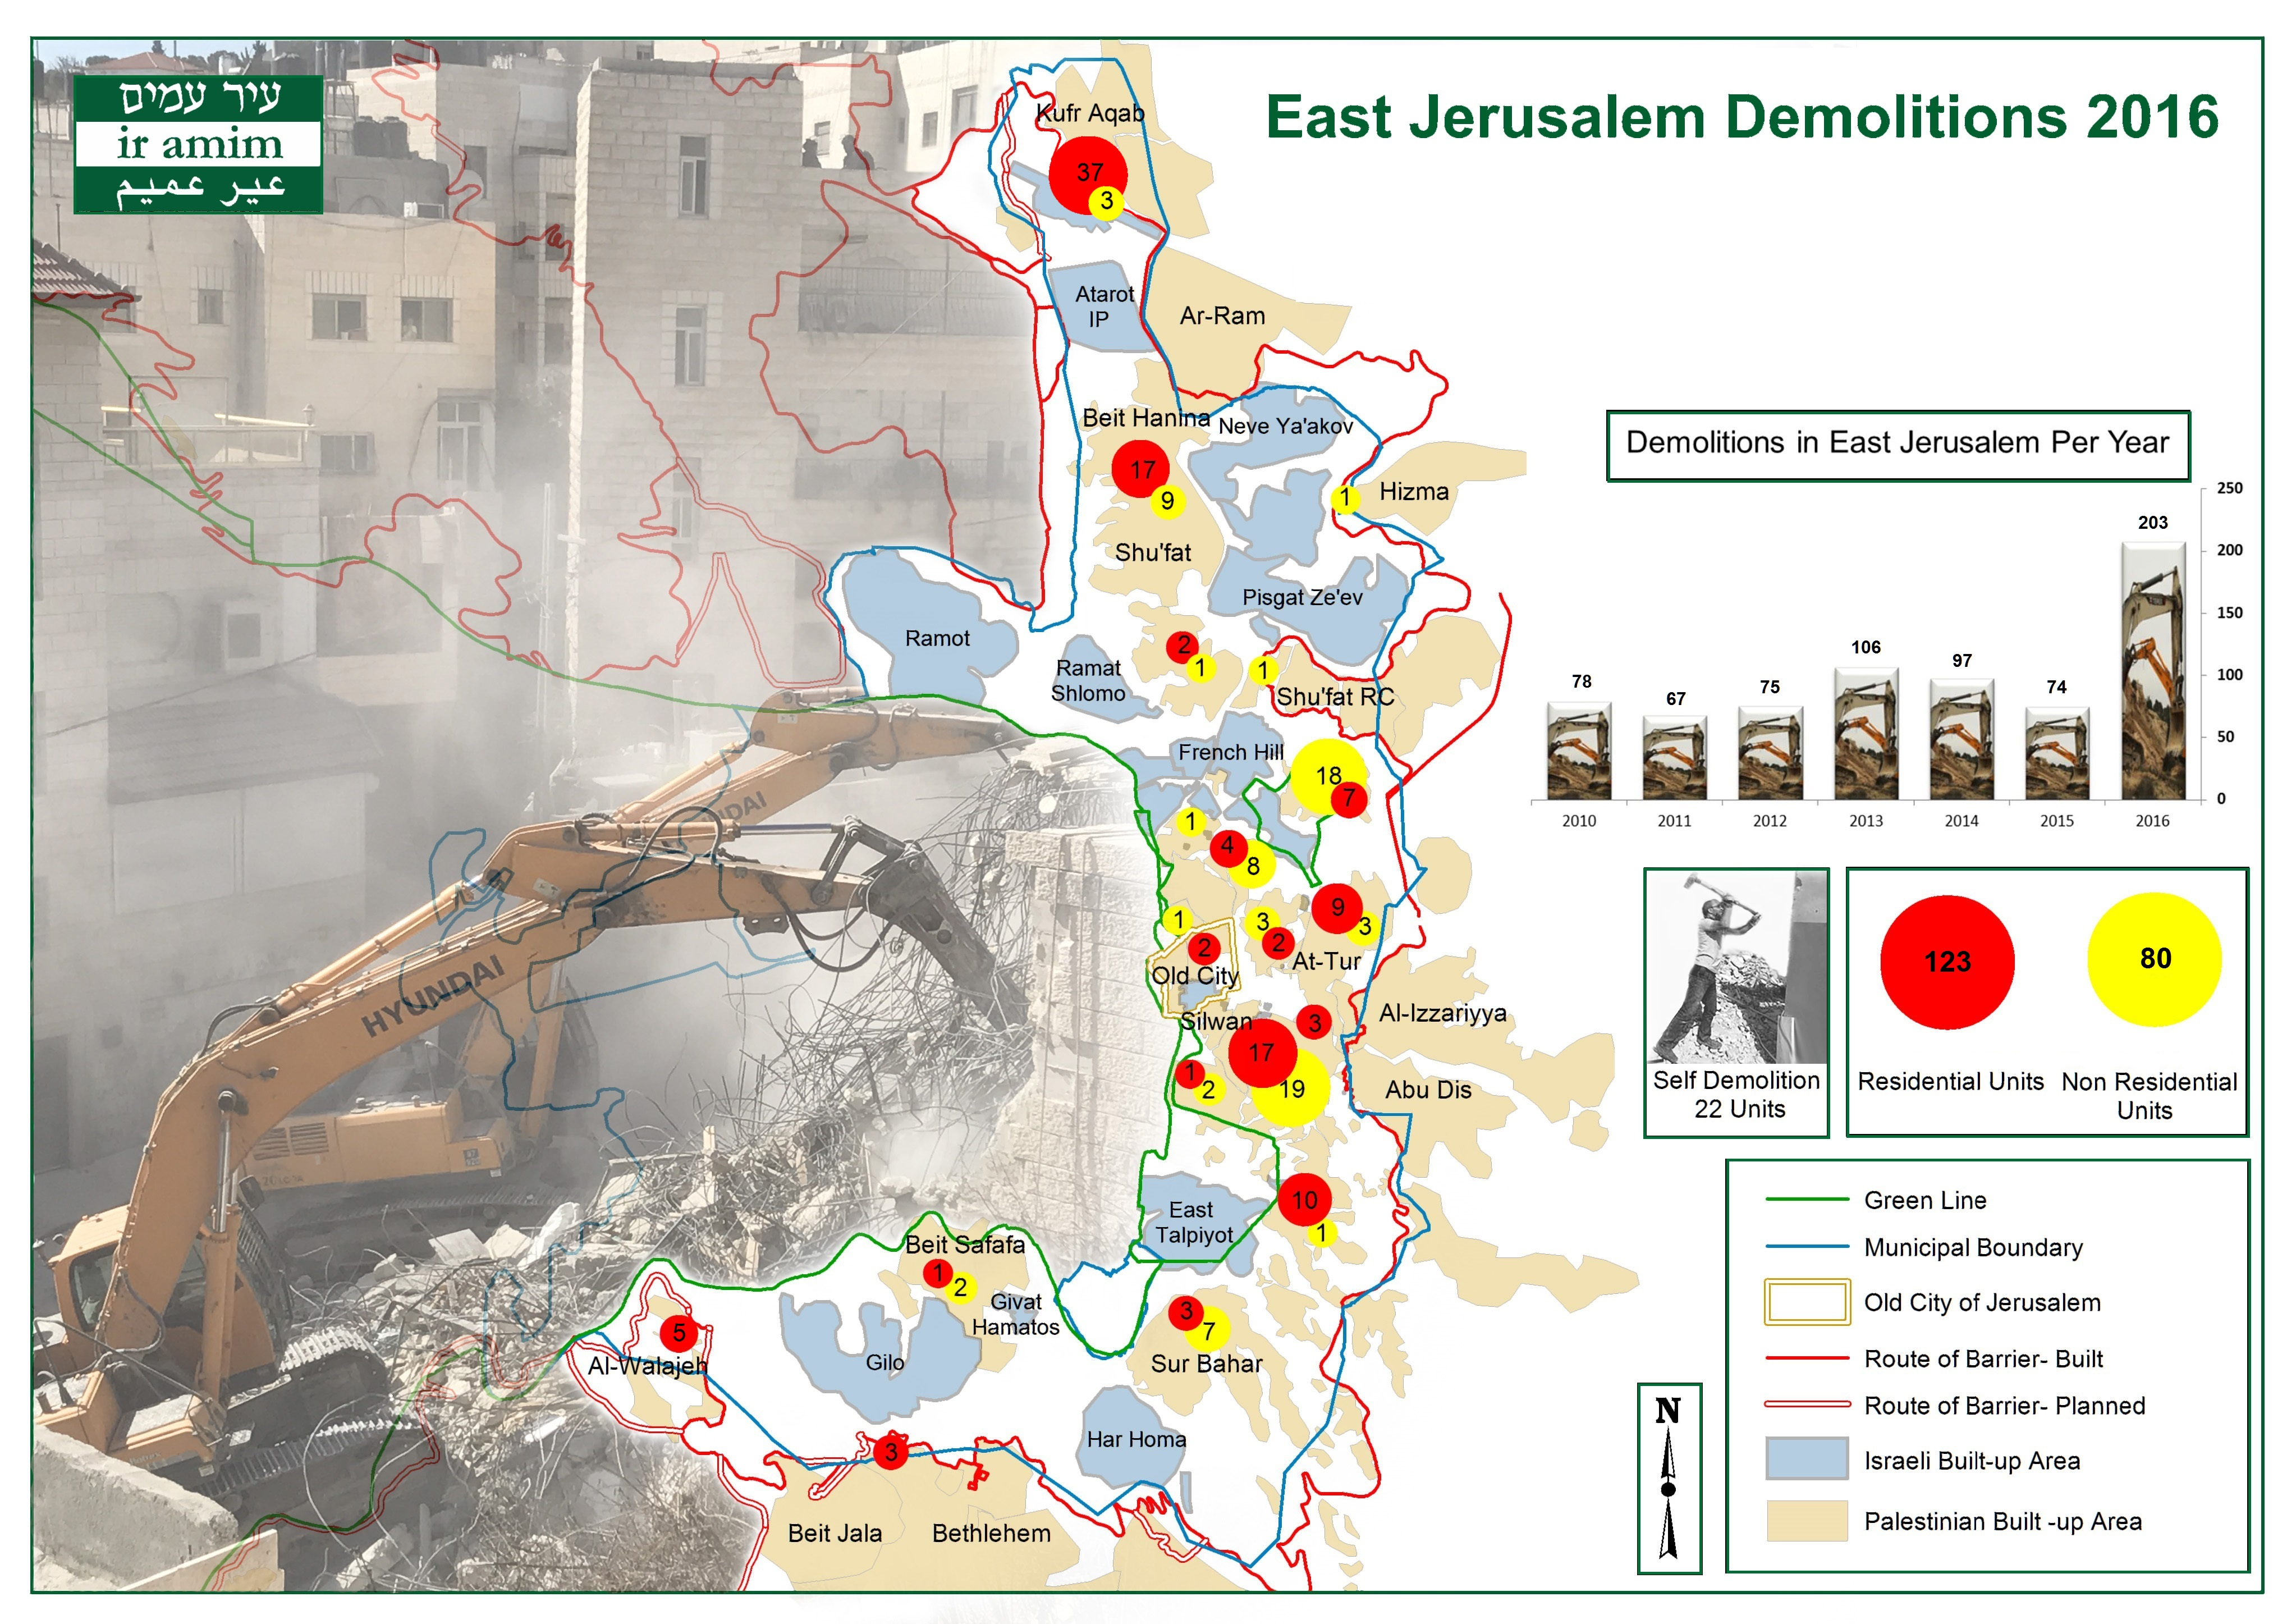 East Jerusalem Demolitions 2016